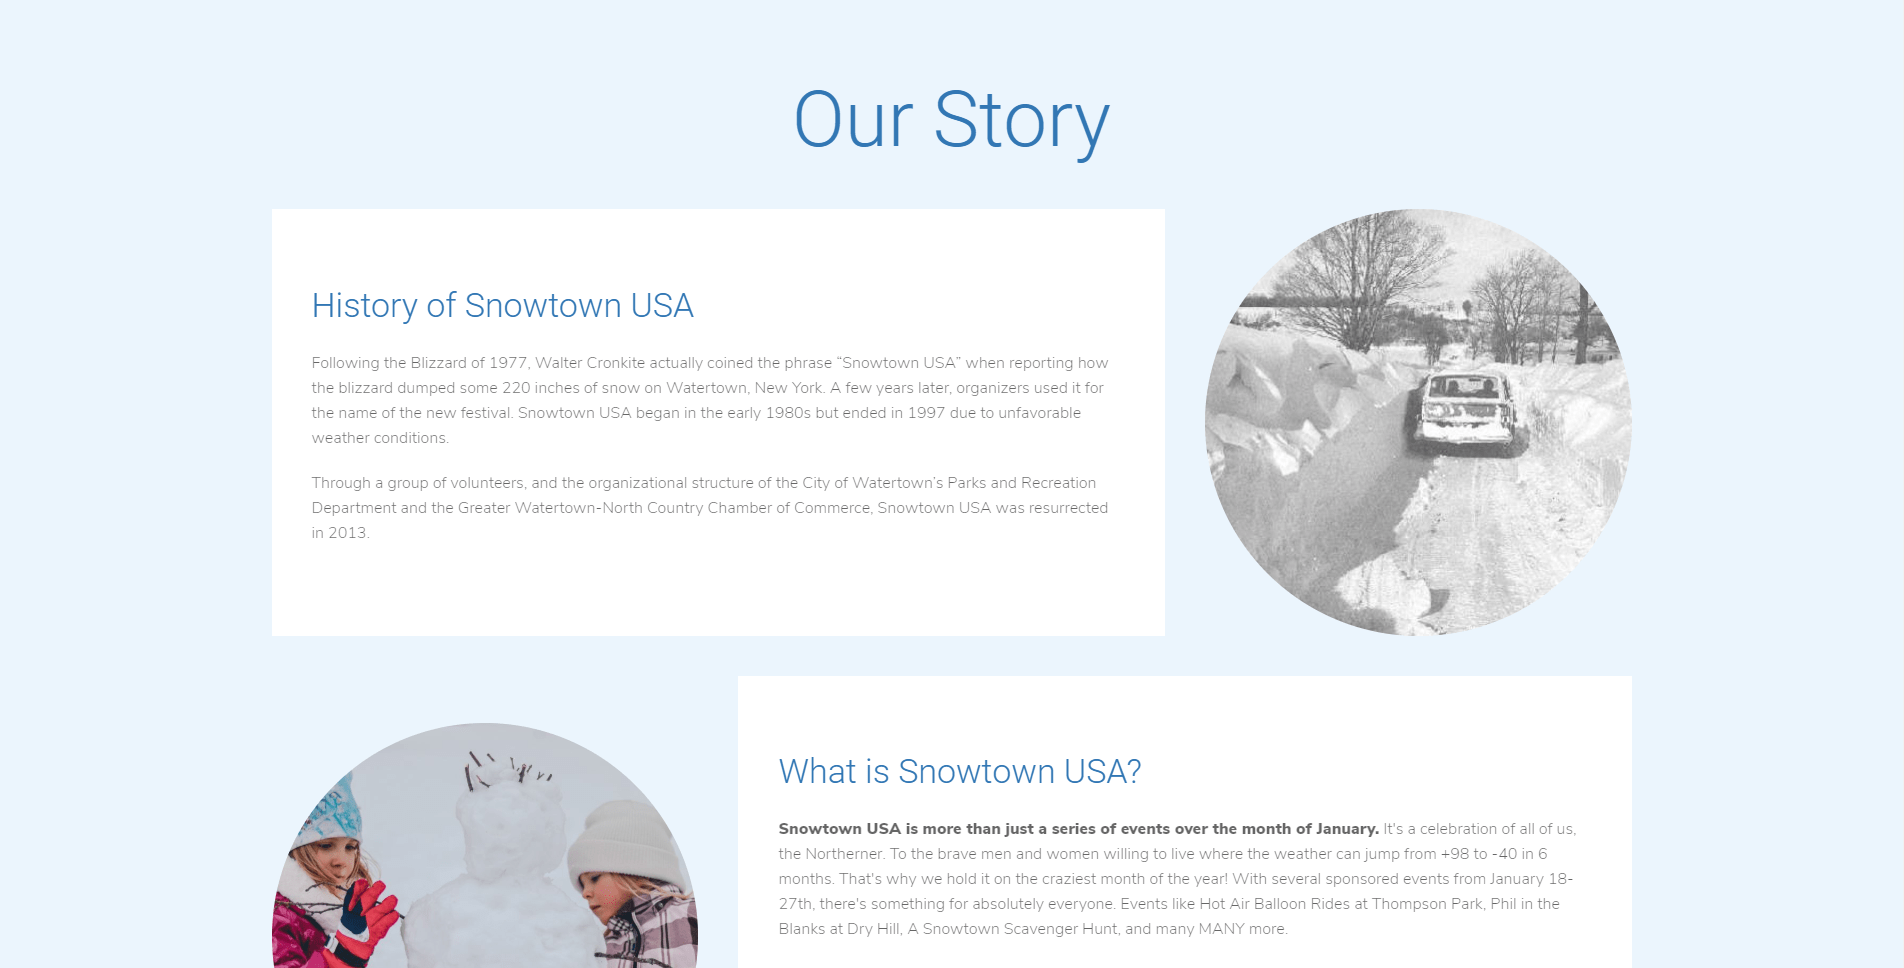 Snowtown USA